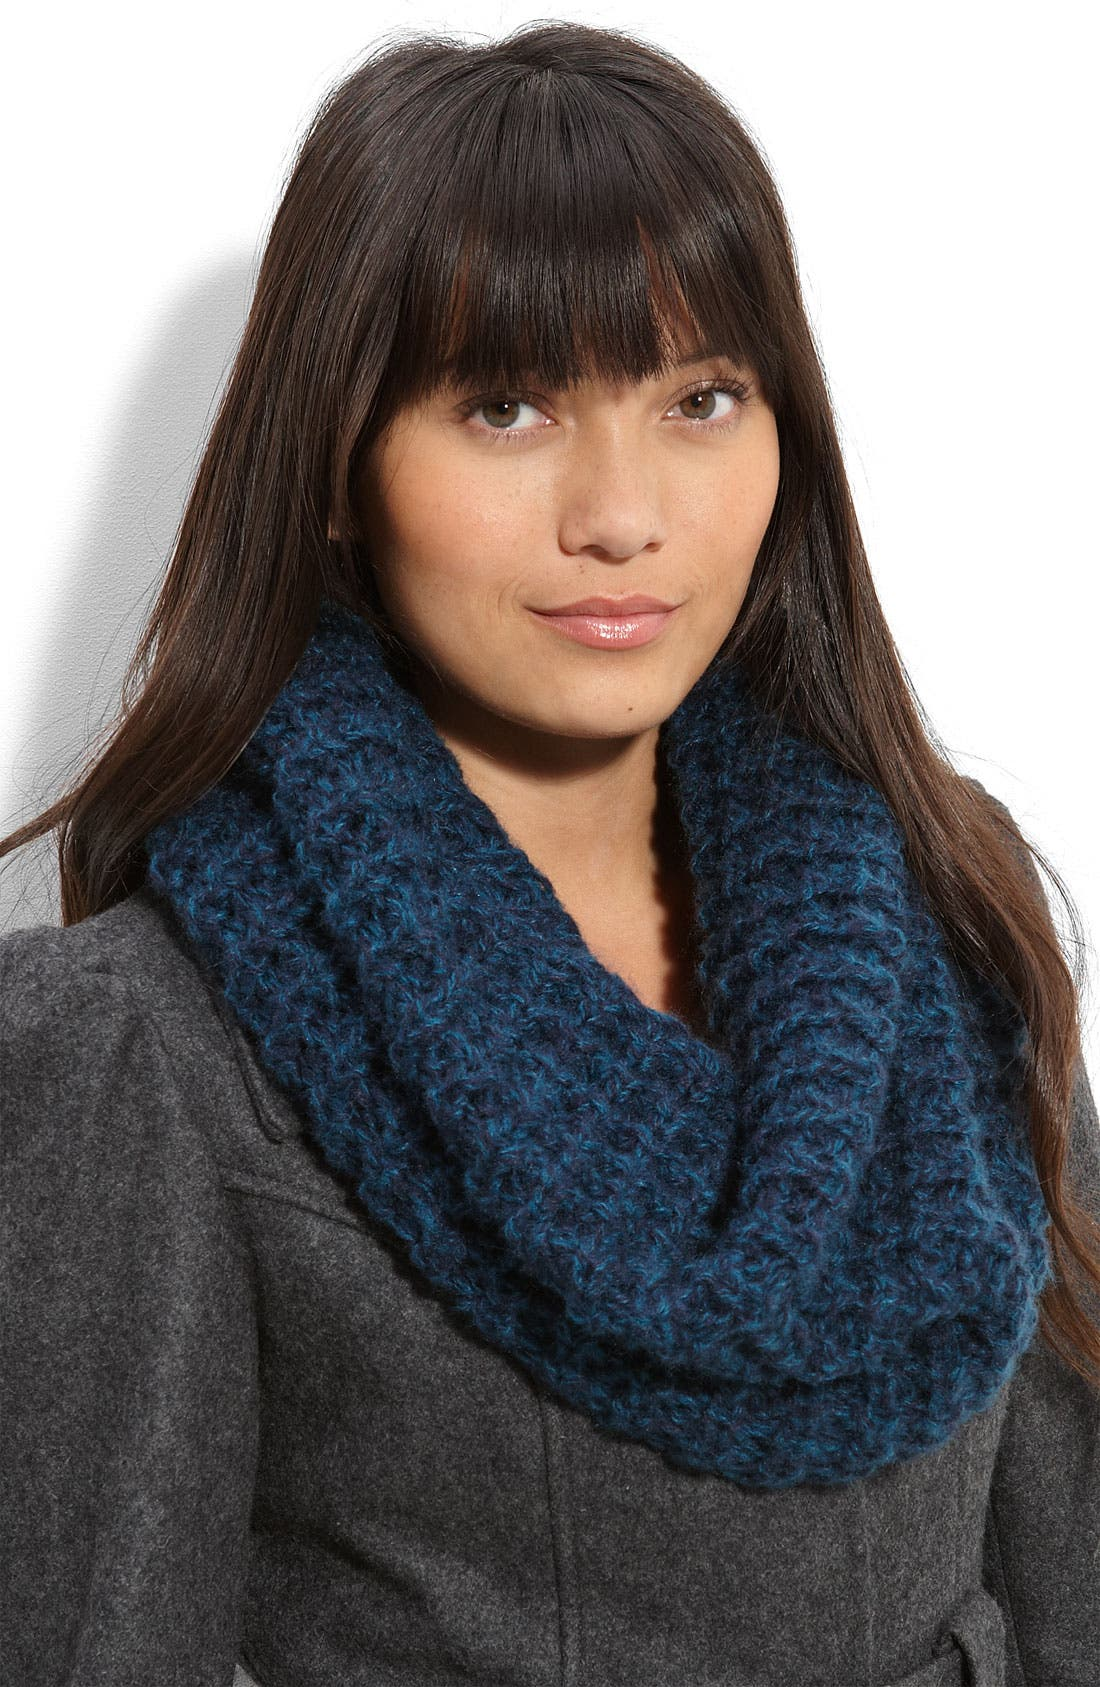 Alternate Image 1 Selected - Frenchi® Marled Infinity Scarf